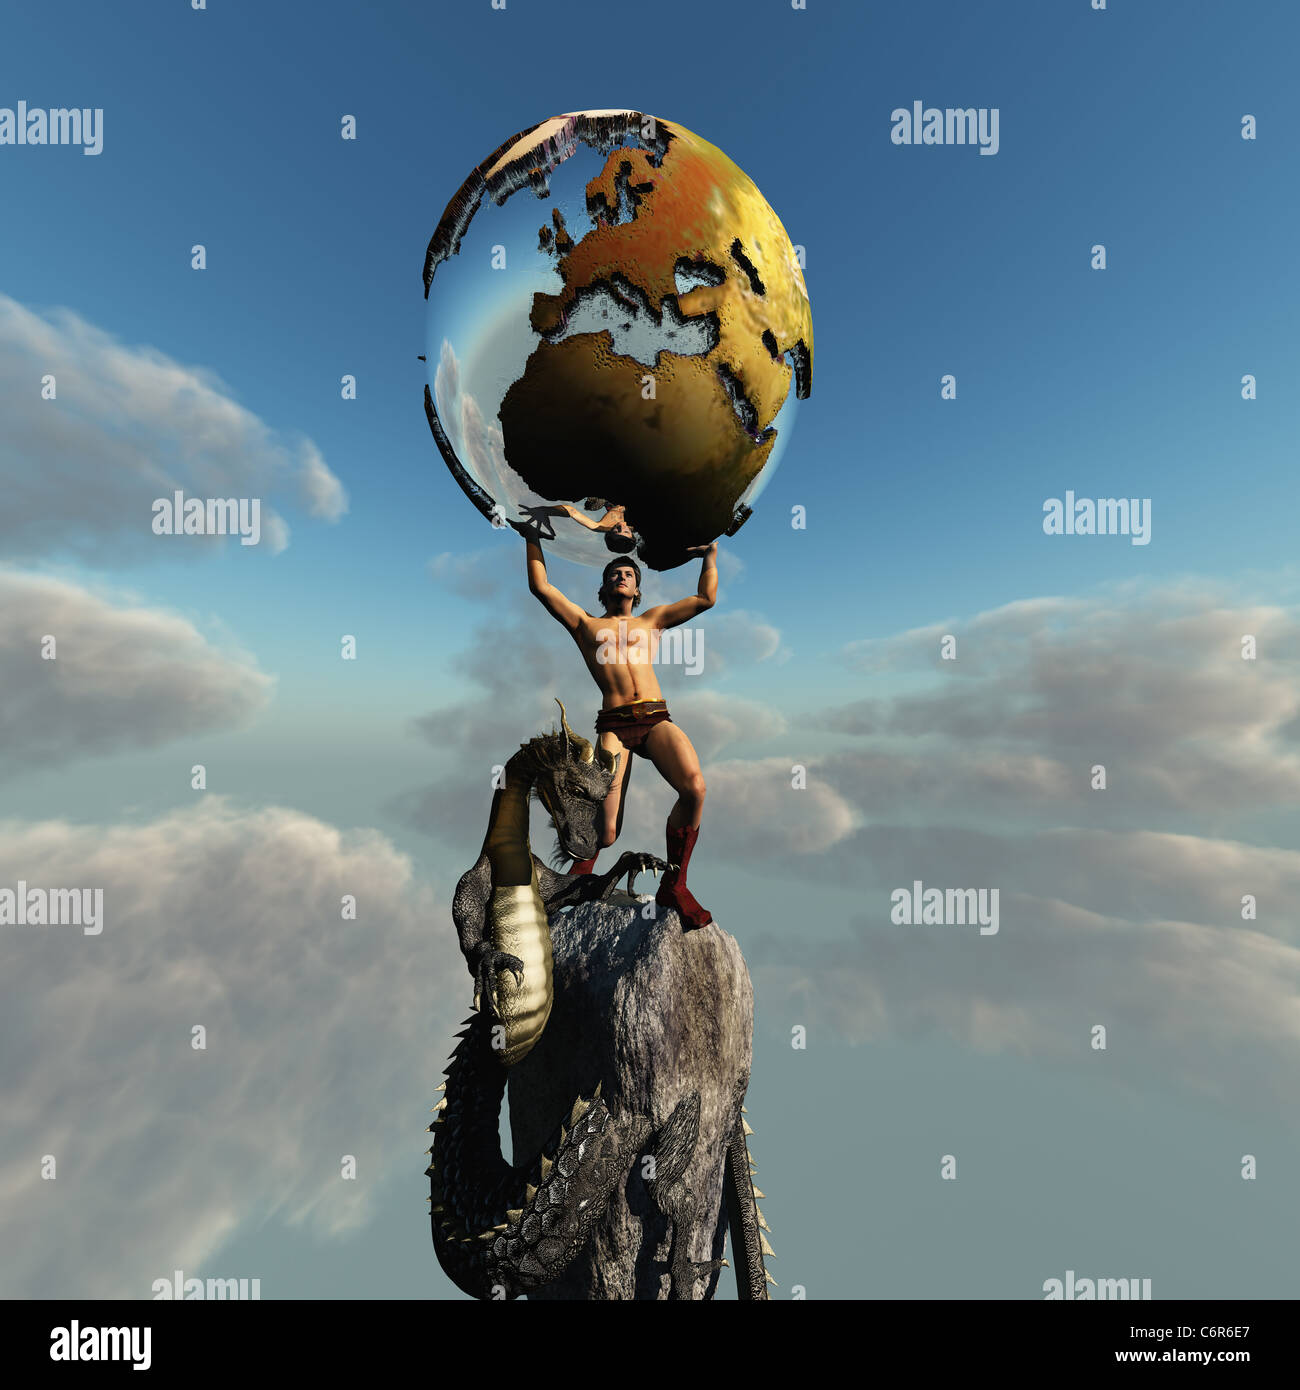 Atlas holds the Earth. The dragon represents the unrest in this part of the world. - Stock Image